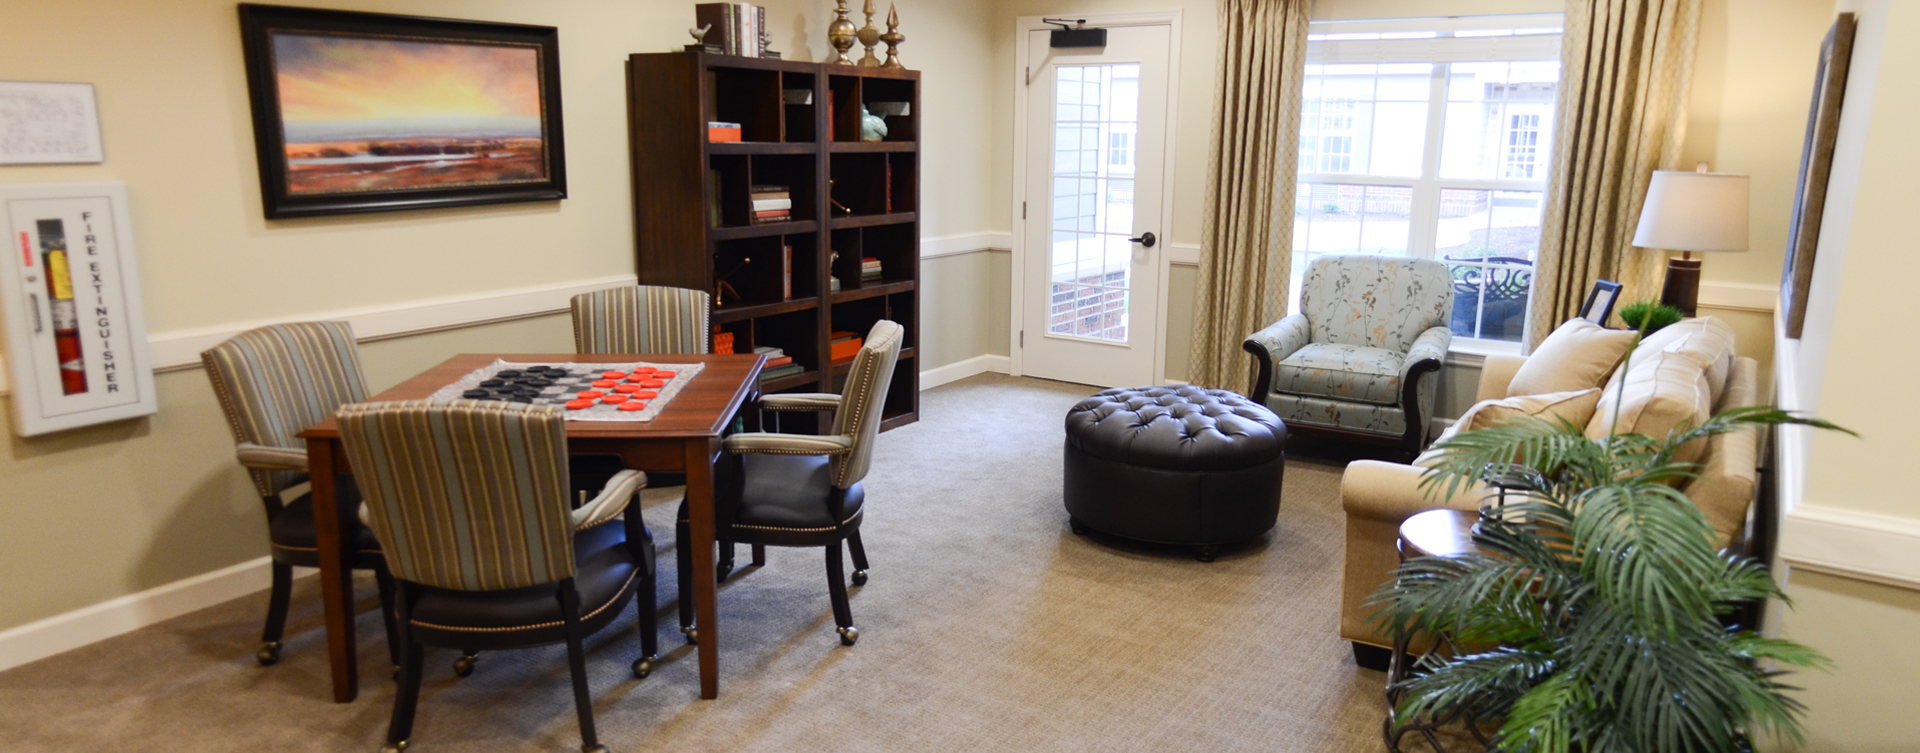 Enjoy a good book in the sitting area at Bickford of Aurora